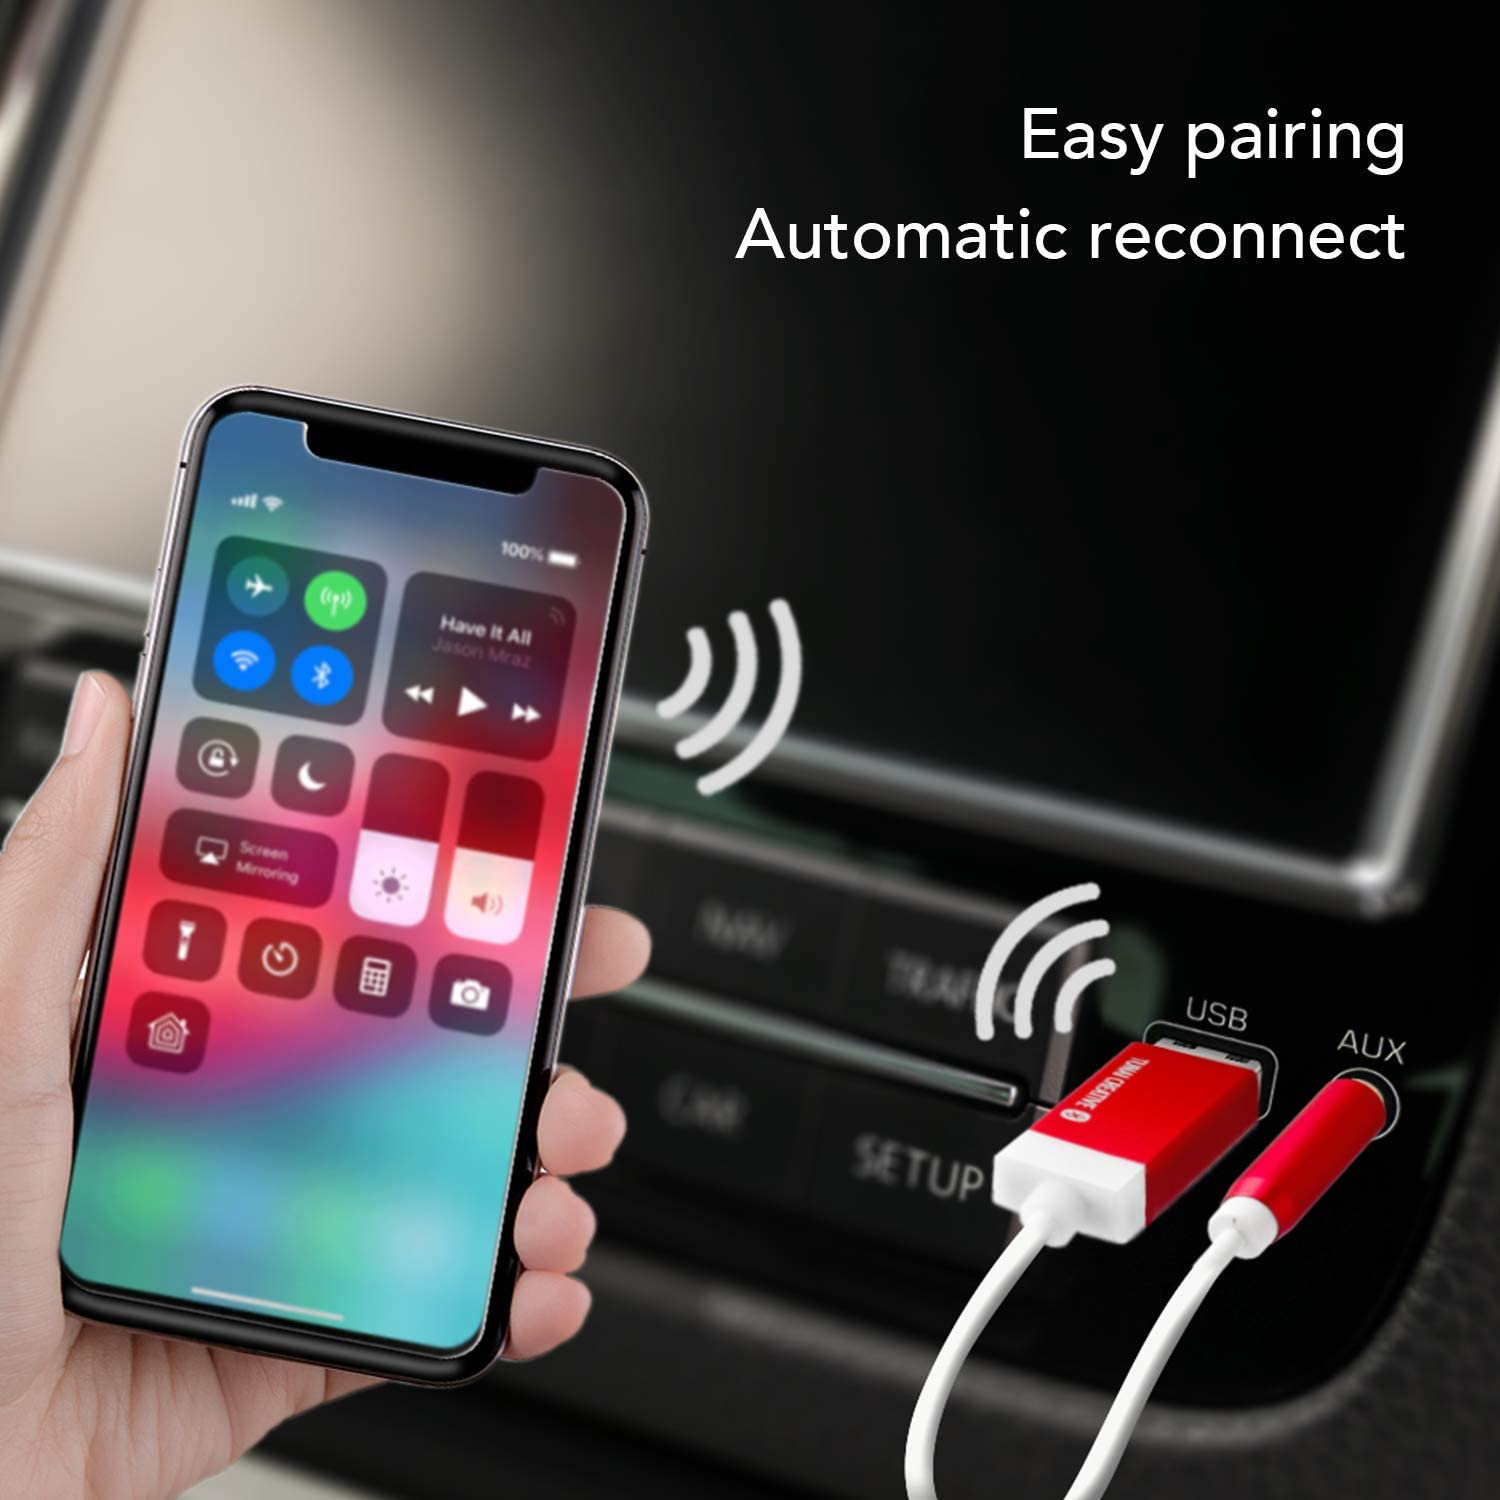 No Charging Needed Red Home Pack TUNAI Firefly Bluetooth Receiver: World/'s Smallest USB Wireless Audio Bluetooth 4.2 Adapter with 3.5mm AUX for Car//Home Stereo Music Streaming; Auto On